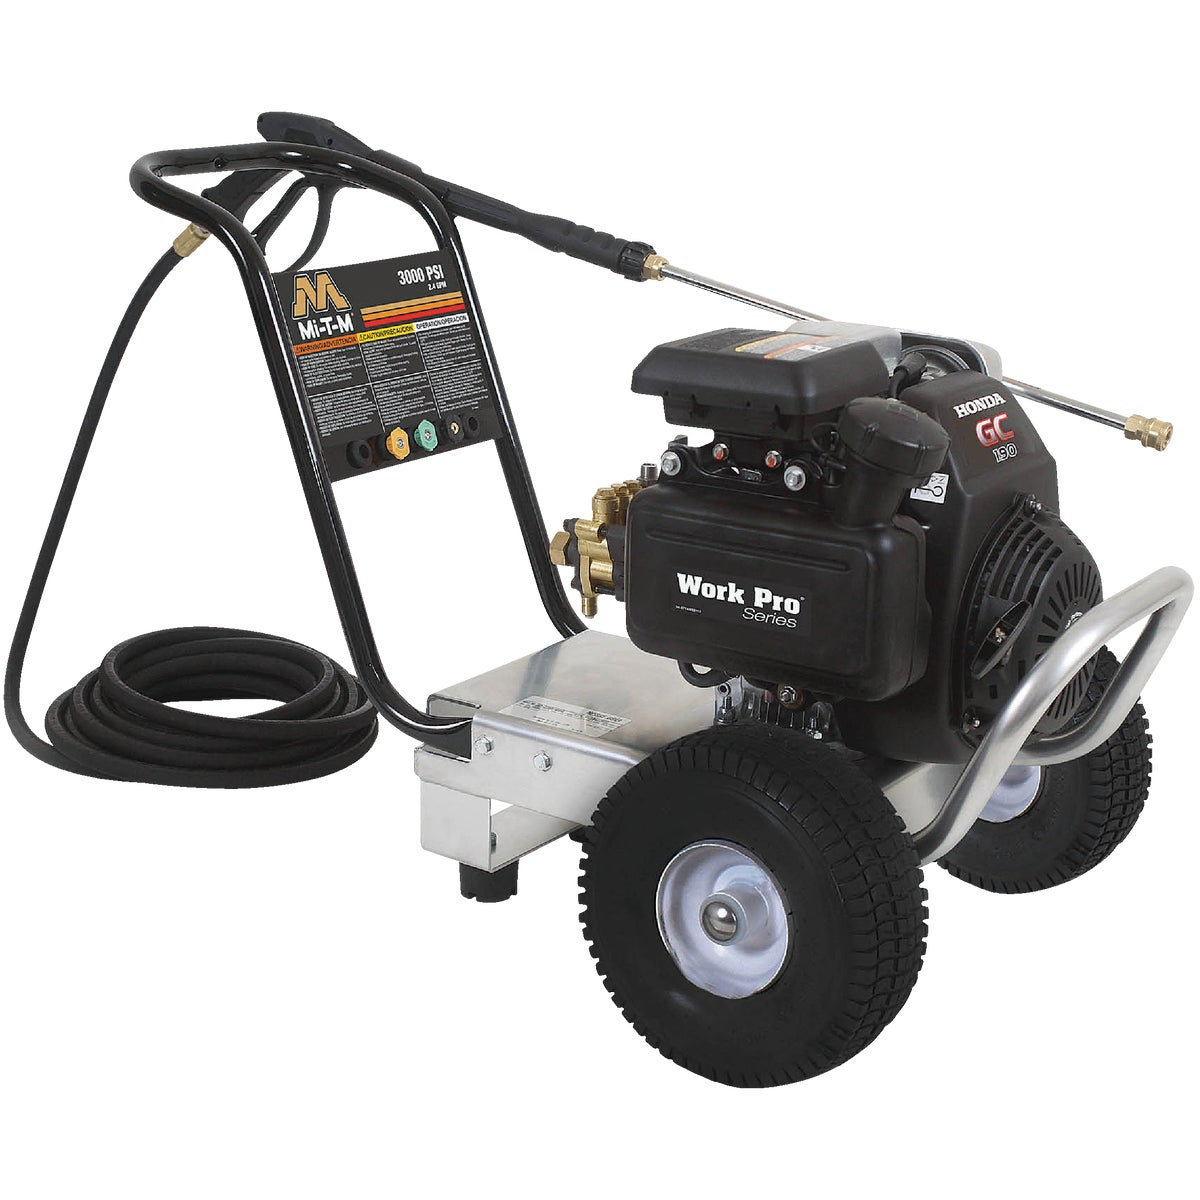 2500 PSI PRESSURE WASHER - WP-2500-4MHB by Mi T M Corp